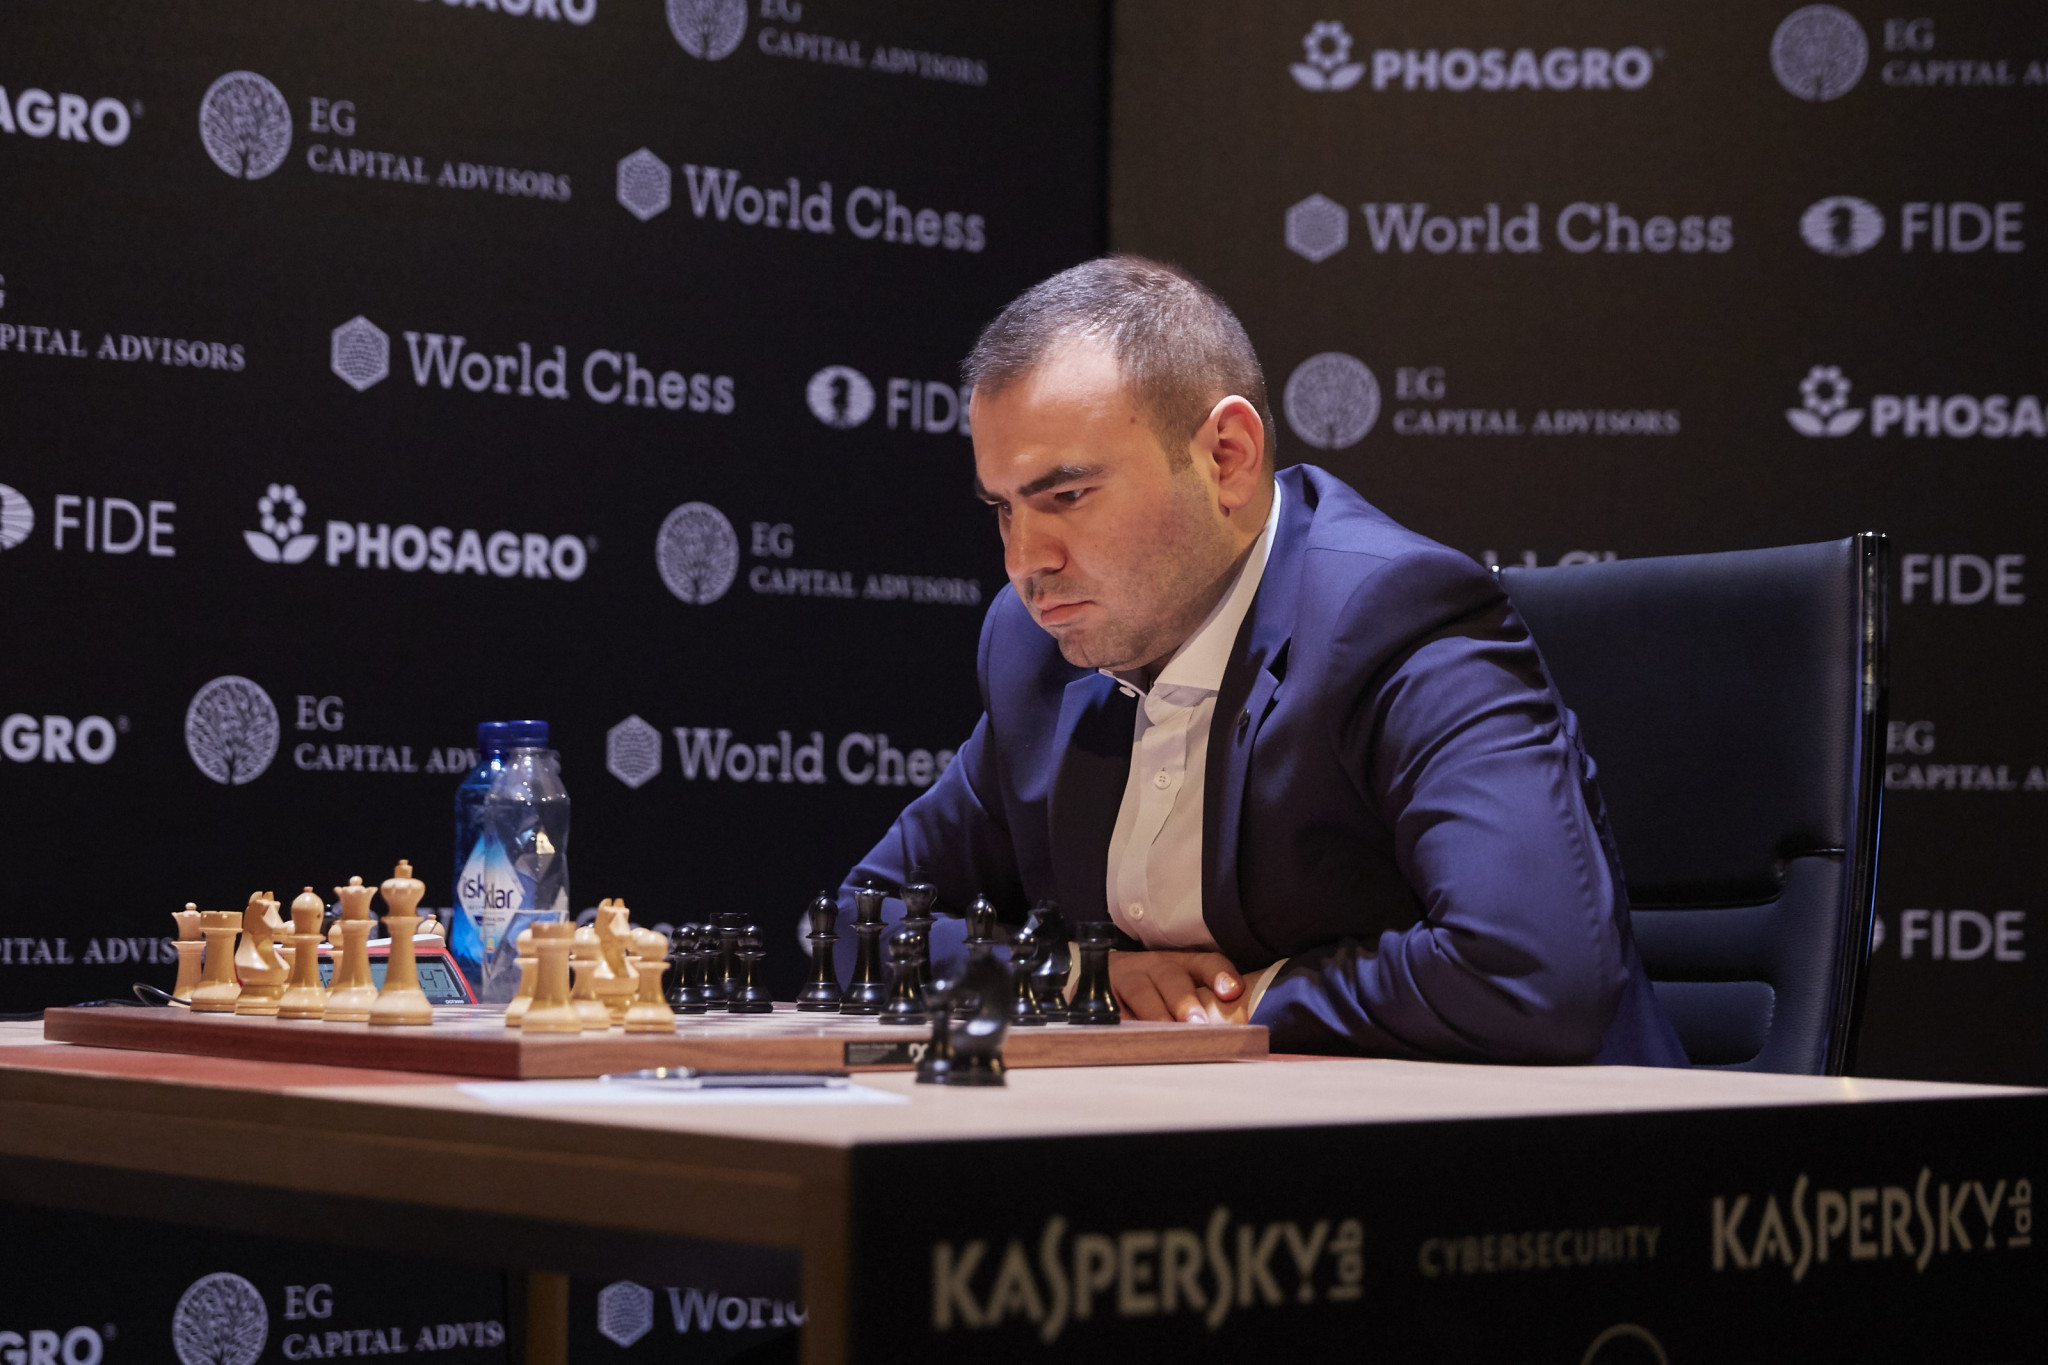 Azerbaijan's Shakhriyar Mamedyarov finished in second place ©Getty Images